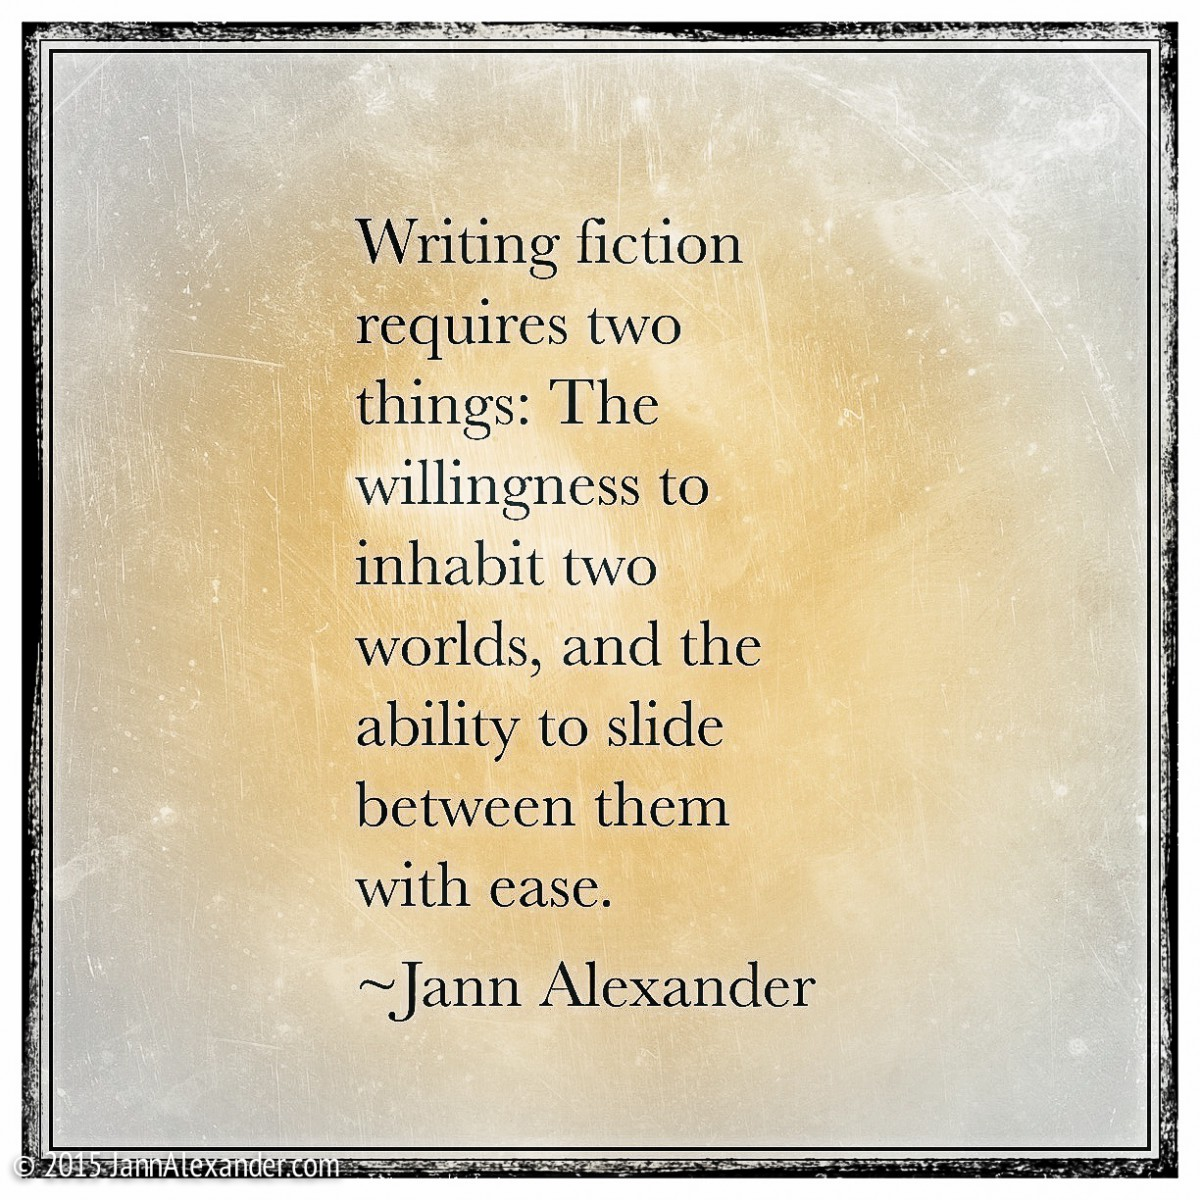 Requirements for Writing Fiction